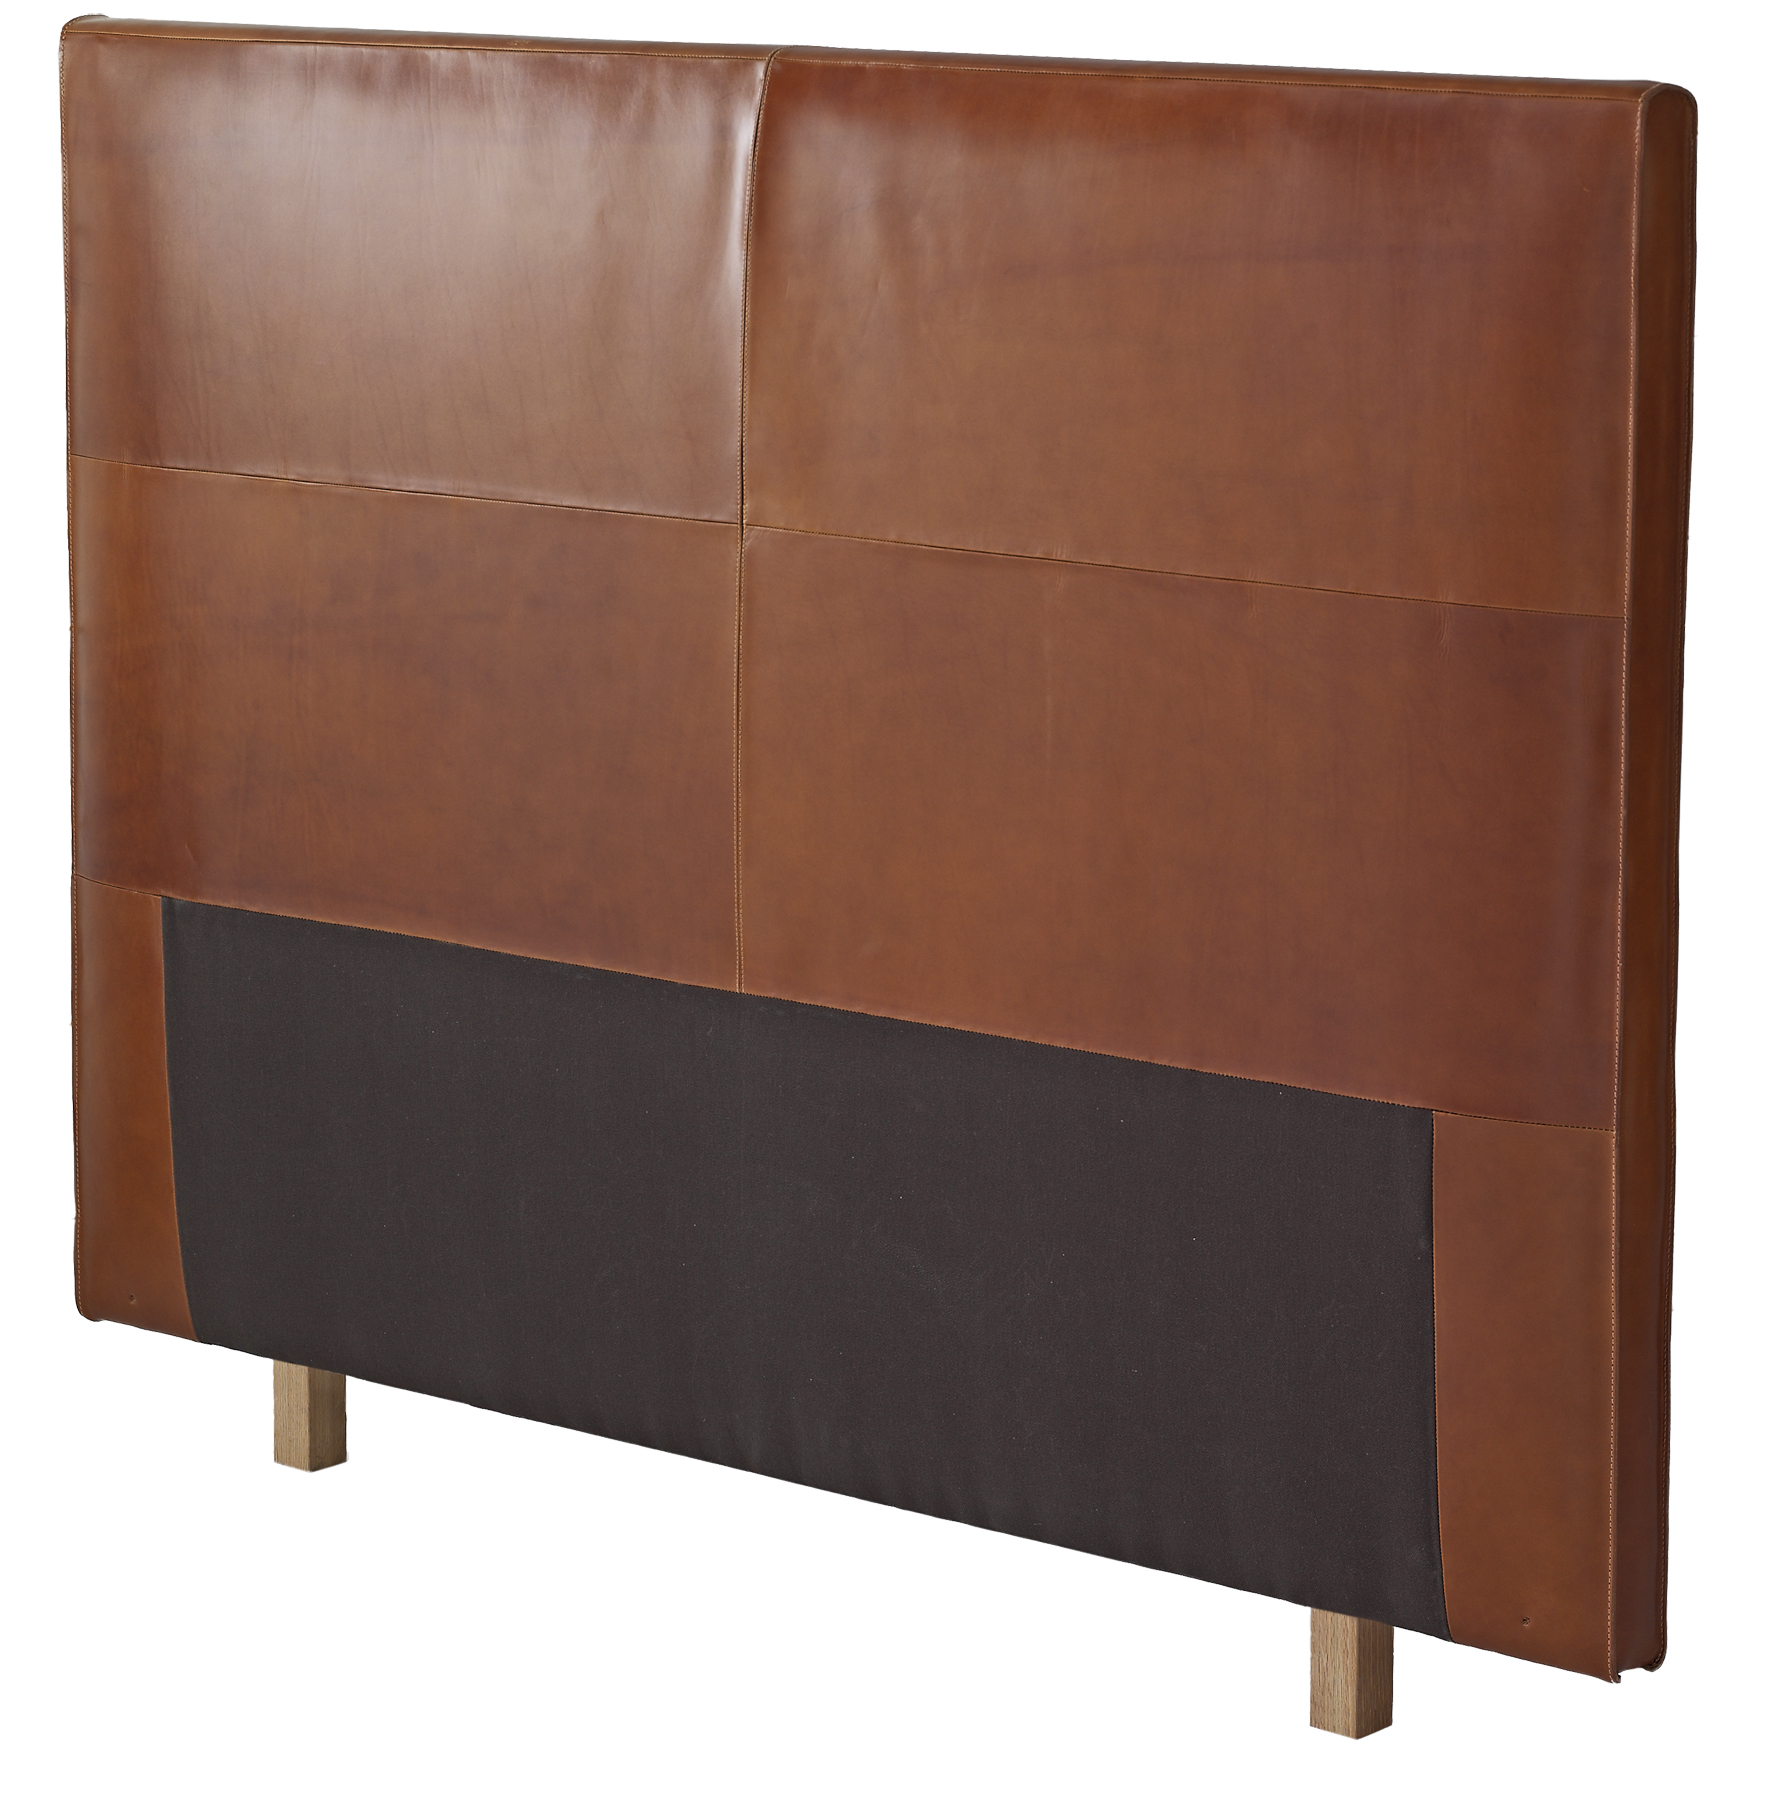 Anniversia, made of certified organic Swedish leather. Height: 52,75 Inches